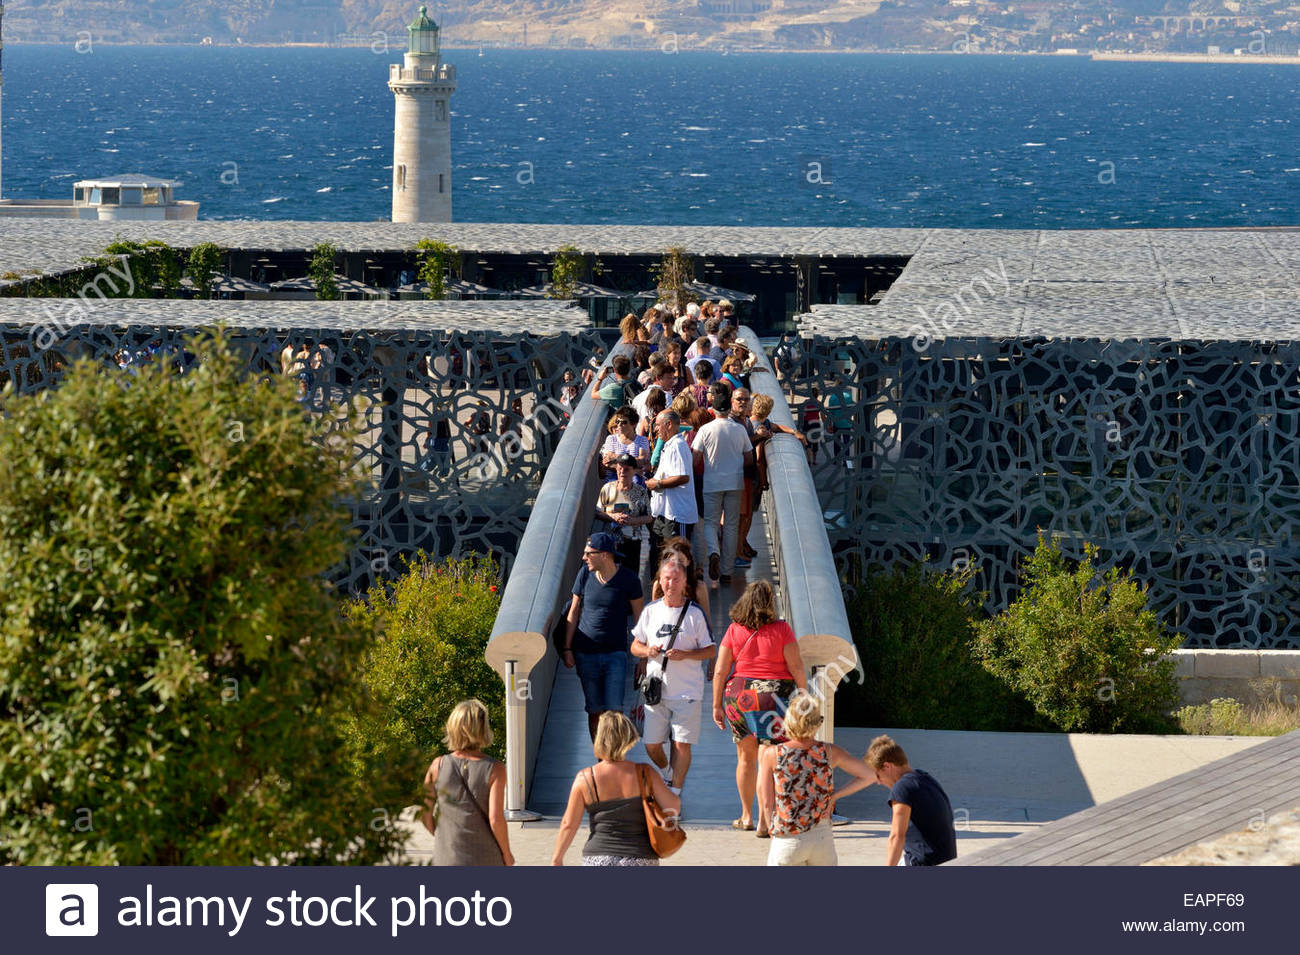 The MUCEM in Marseille - Stock Image